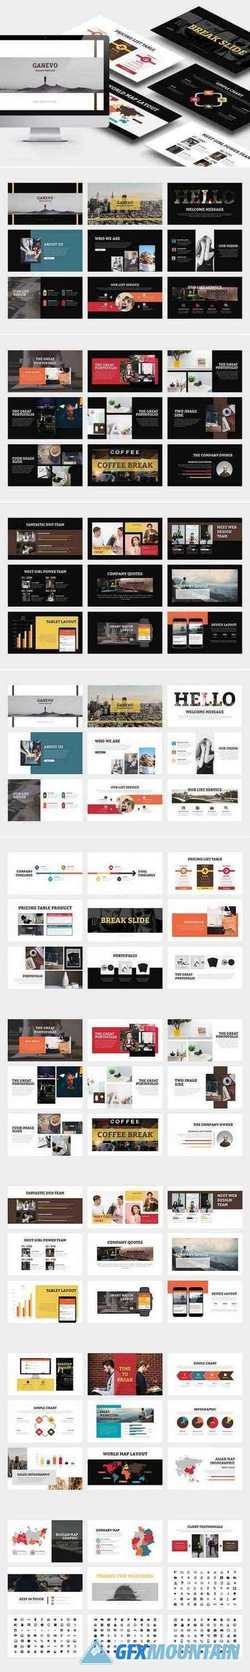 Ganevo : Creative Studio Powerpoint 2931520